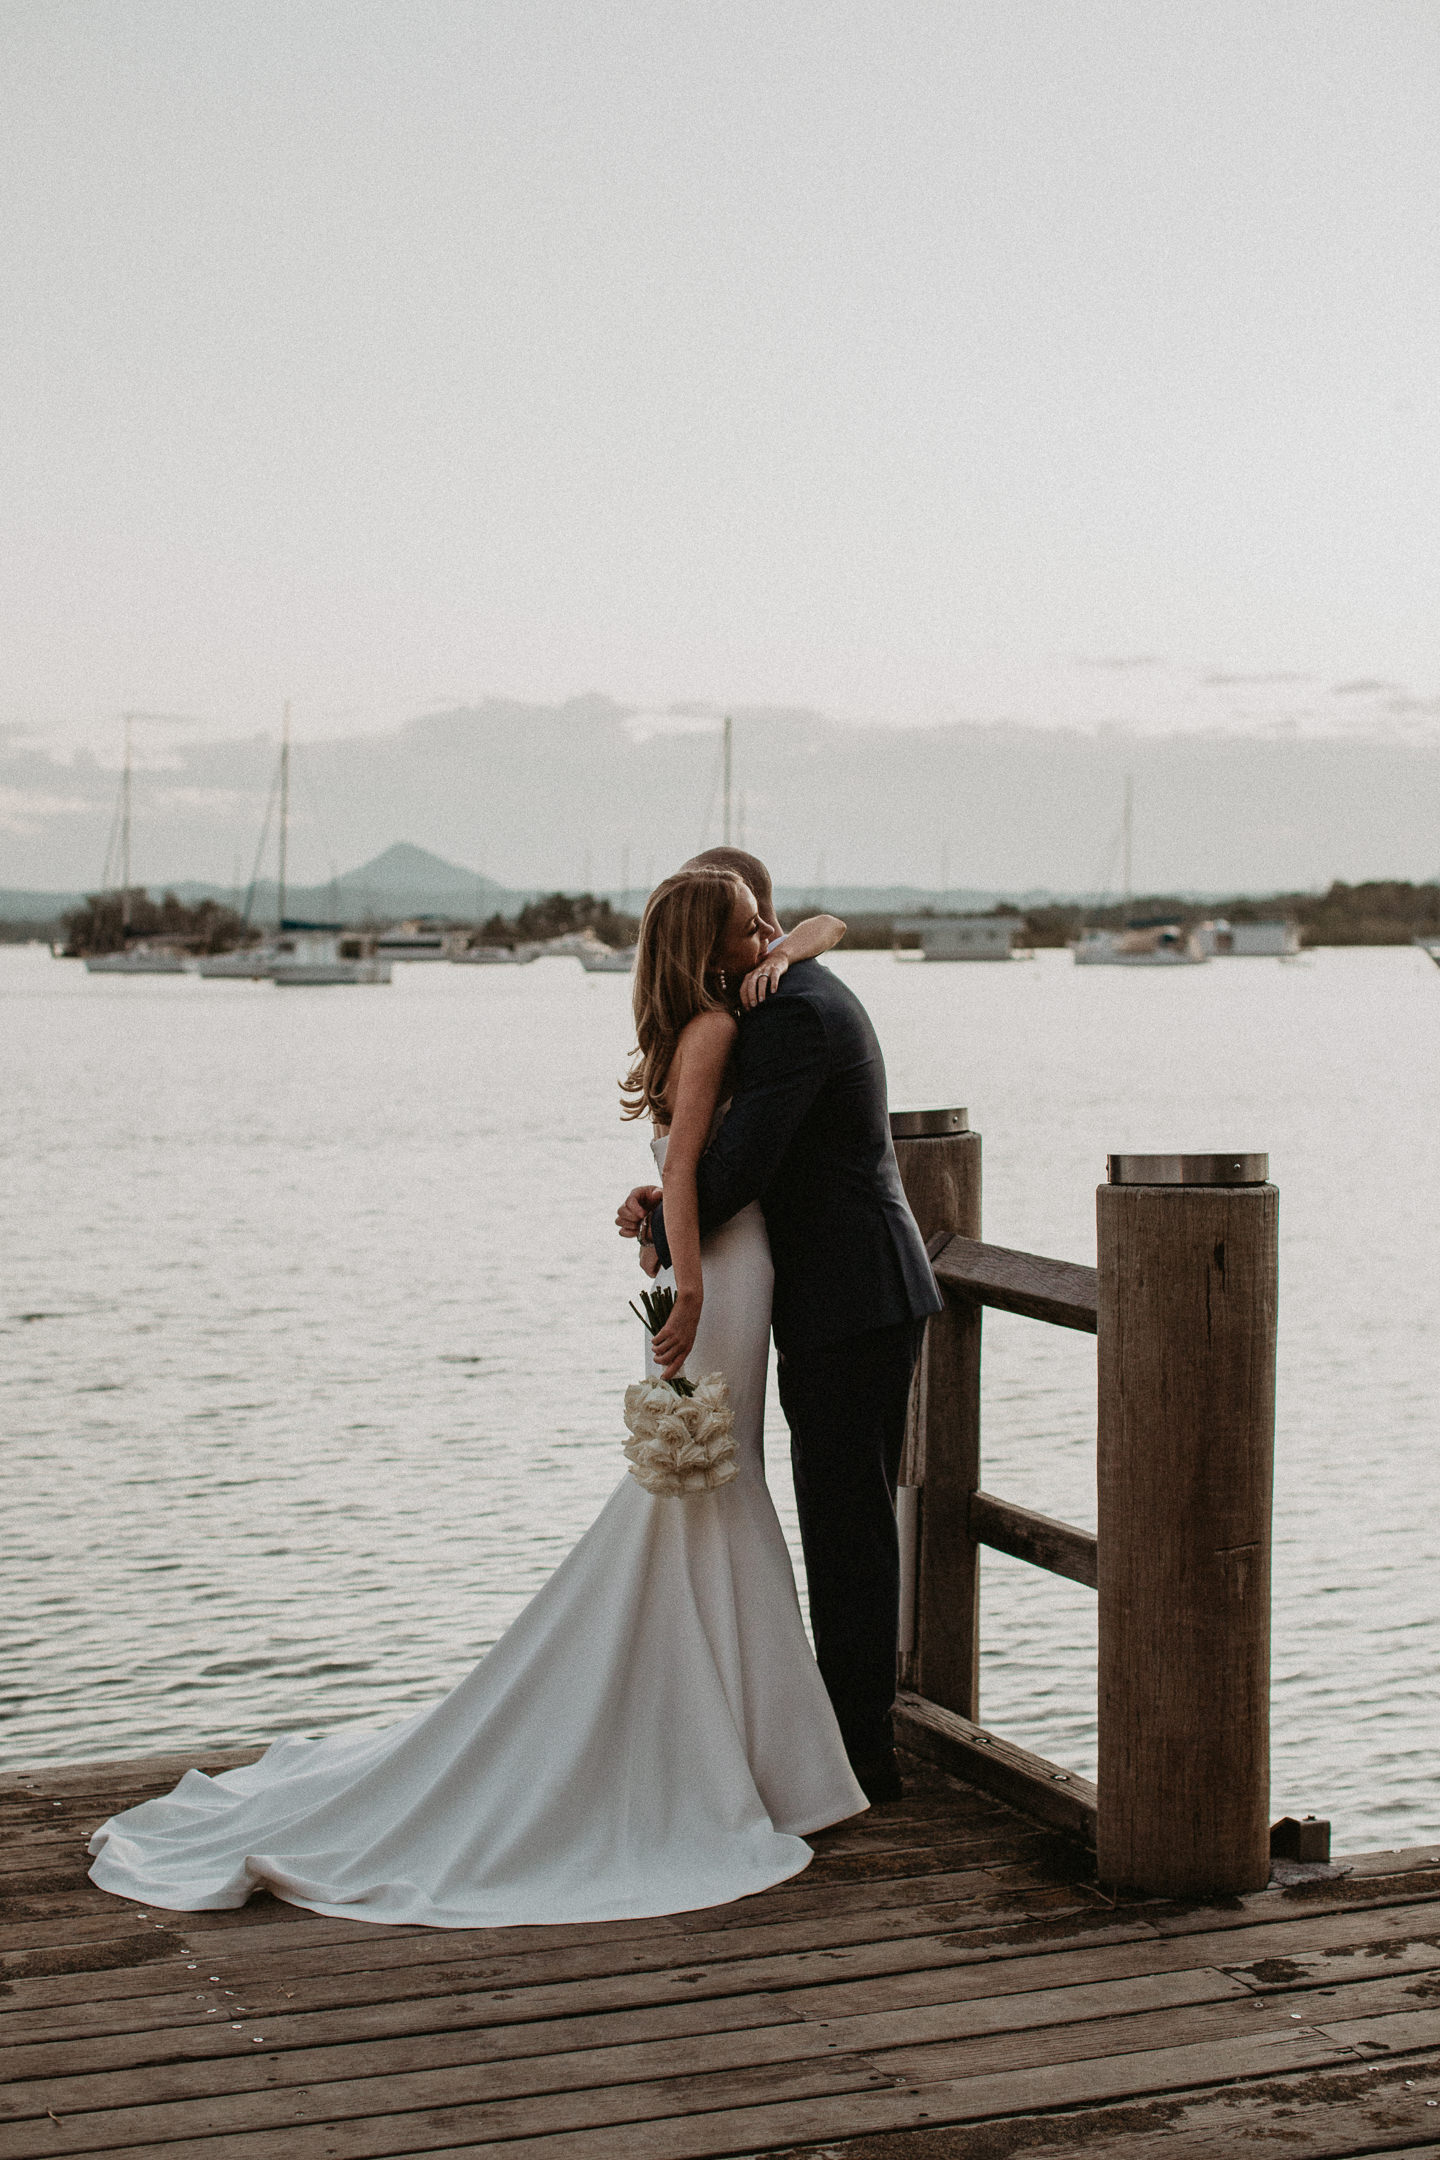 These are amazing - we absolutely love them! Thank you so much for capturing our day in such an effortless way. You were so easy and relaxed and we loved having you there! Thanks again, - Katie + Bryce  shot by jenna.